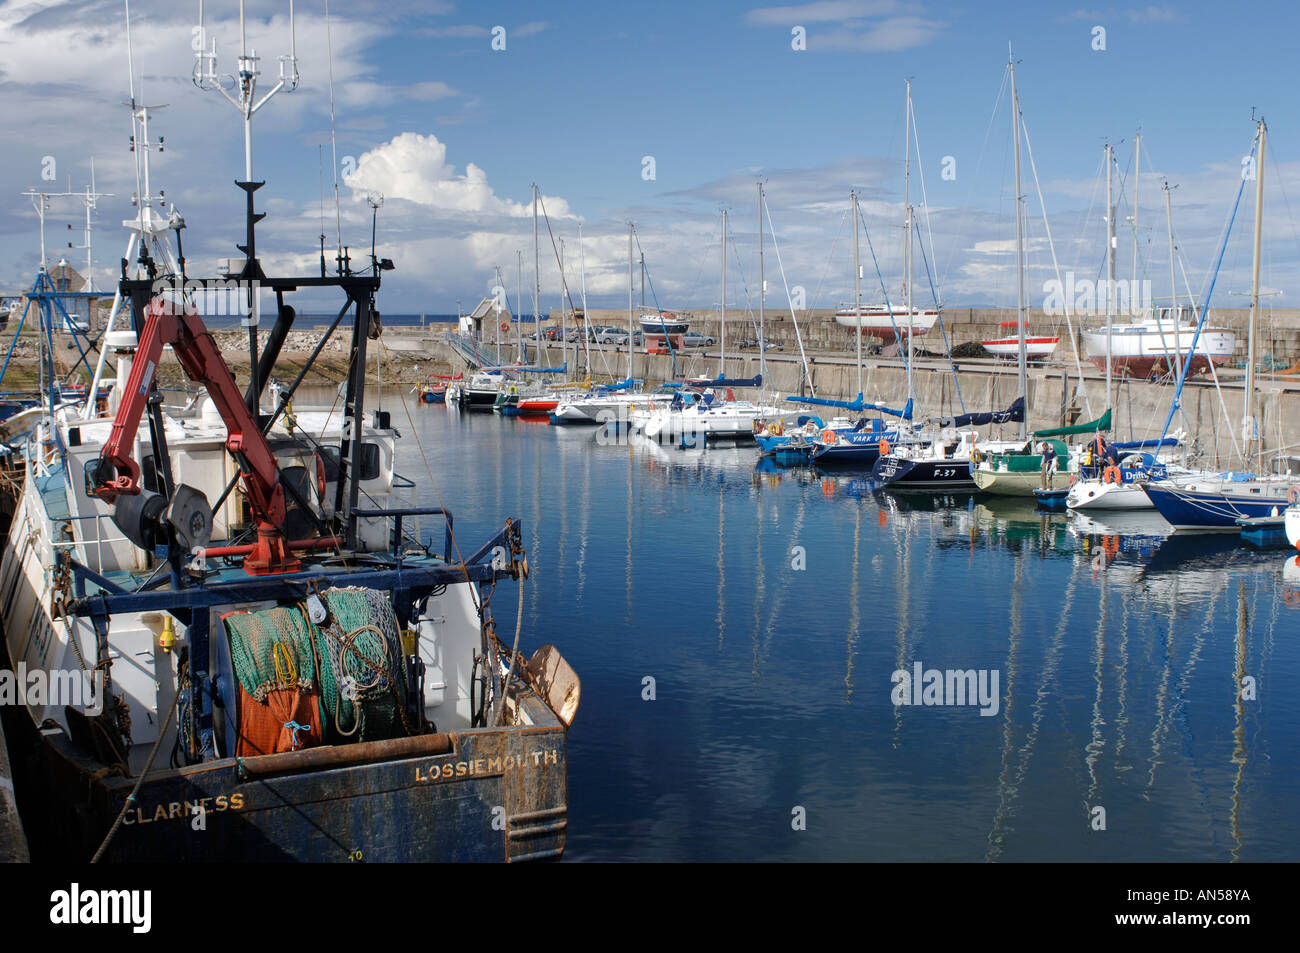 Lossiemouth harbour shared by both fishing and pleasure boats. Morayshire. Scotland.  XPL 3222-321 - Stock Image